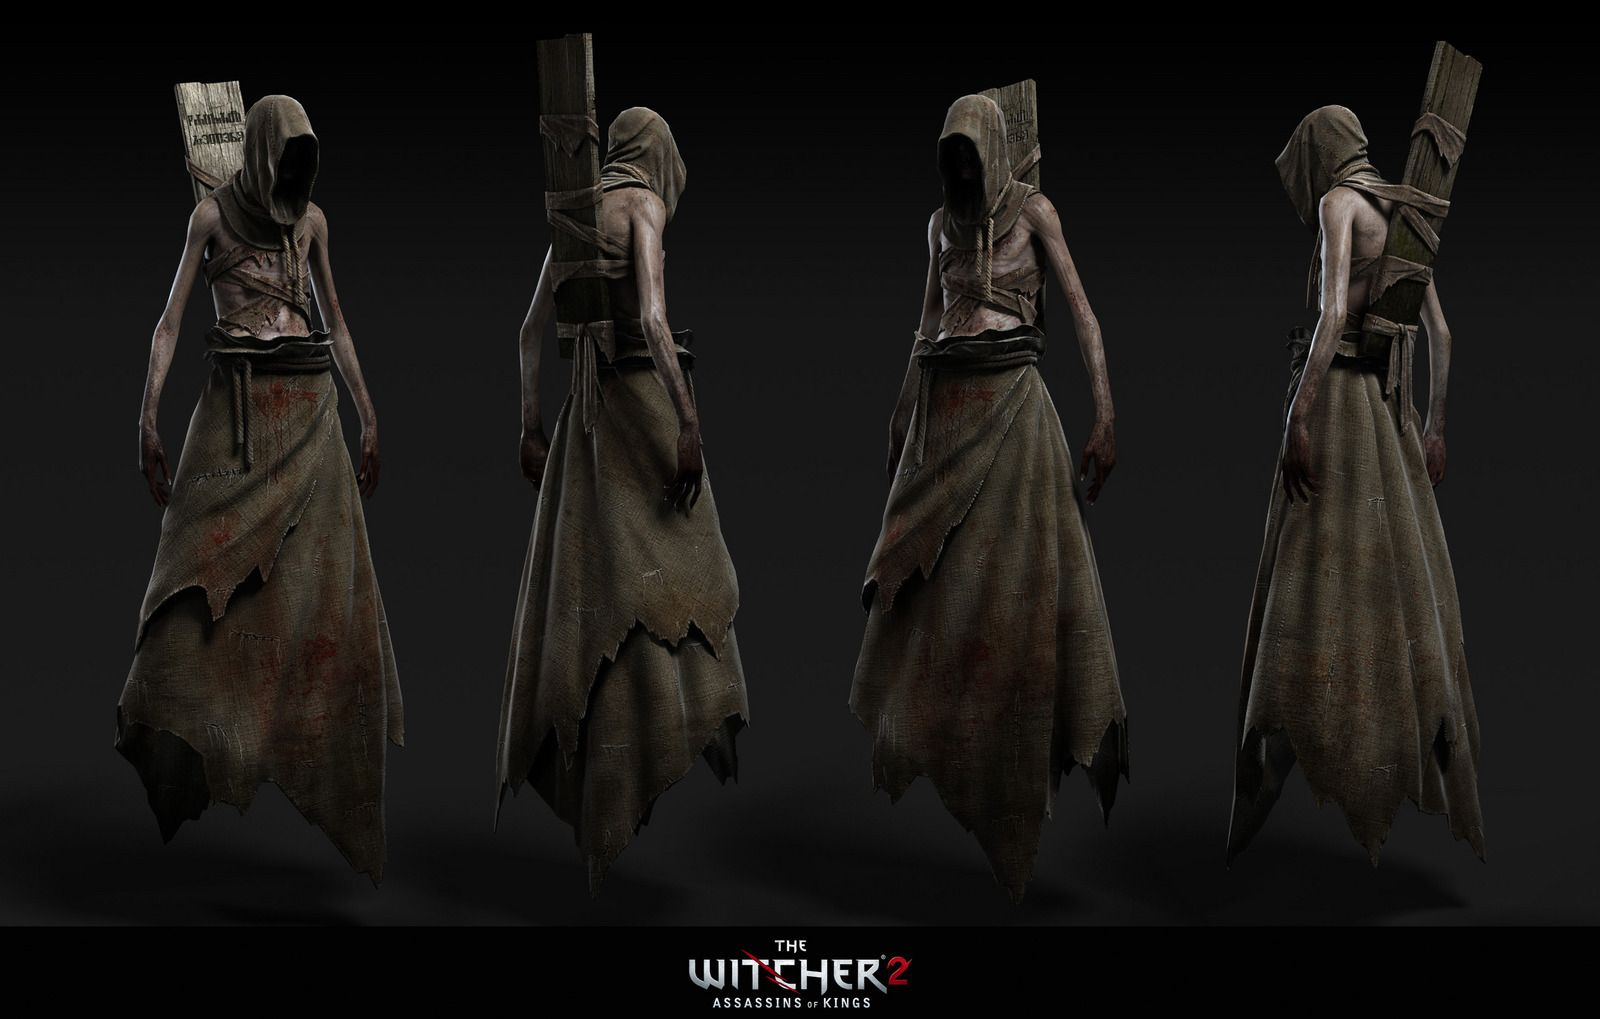 The Men Women Puffy Shirts Of The Witcher 2 The Witcher